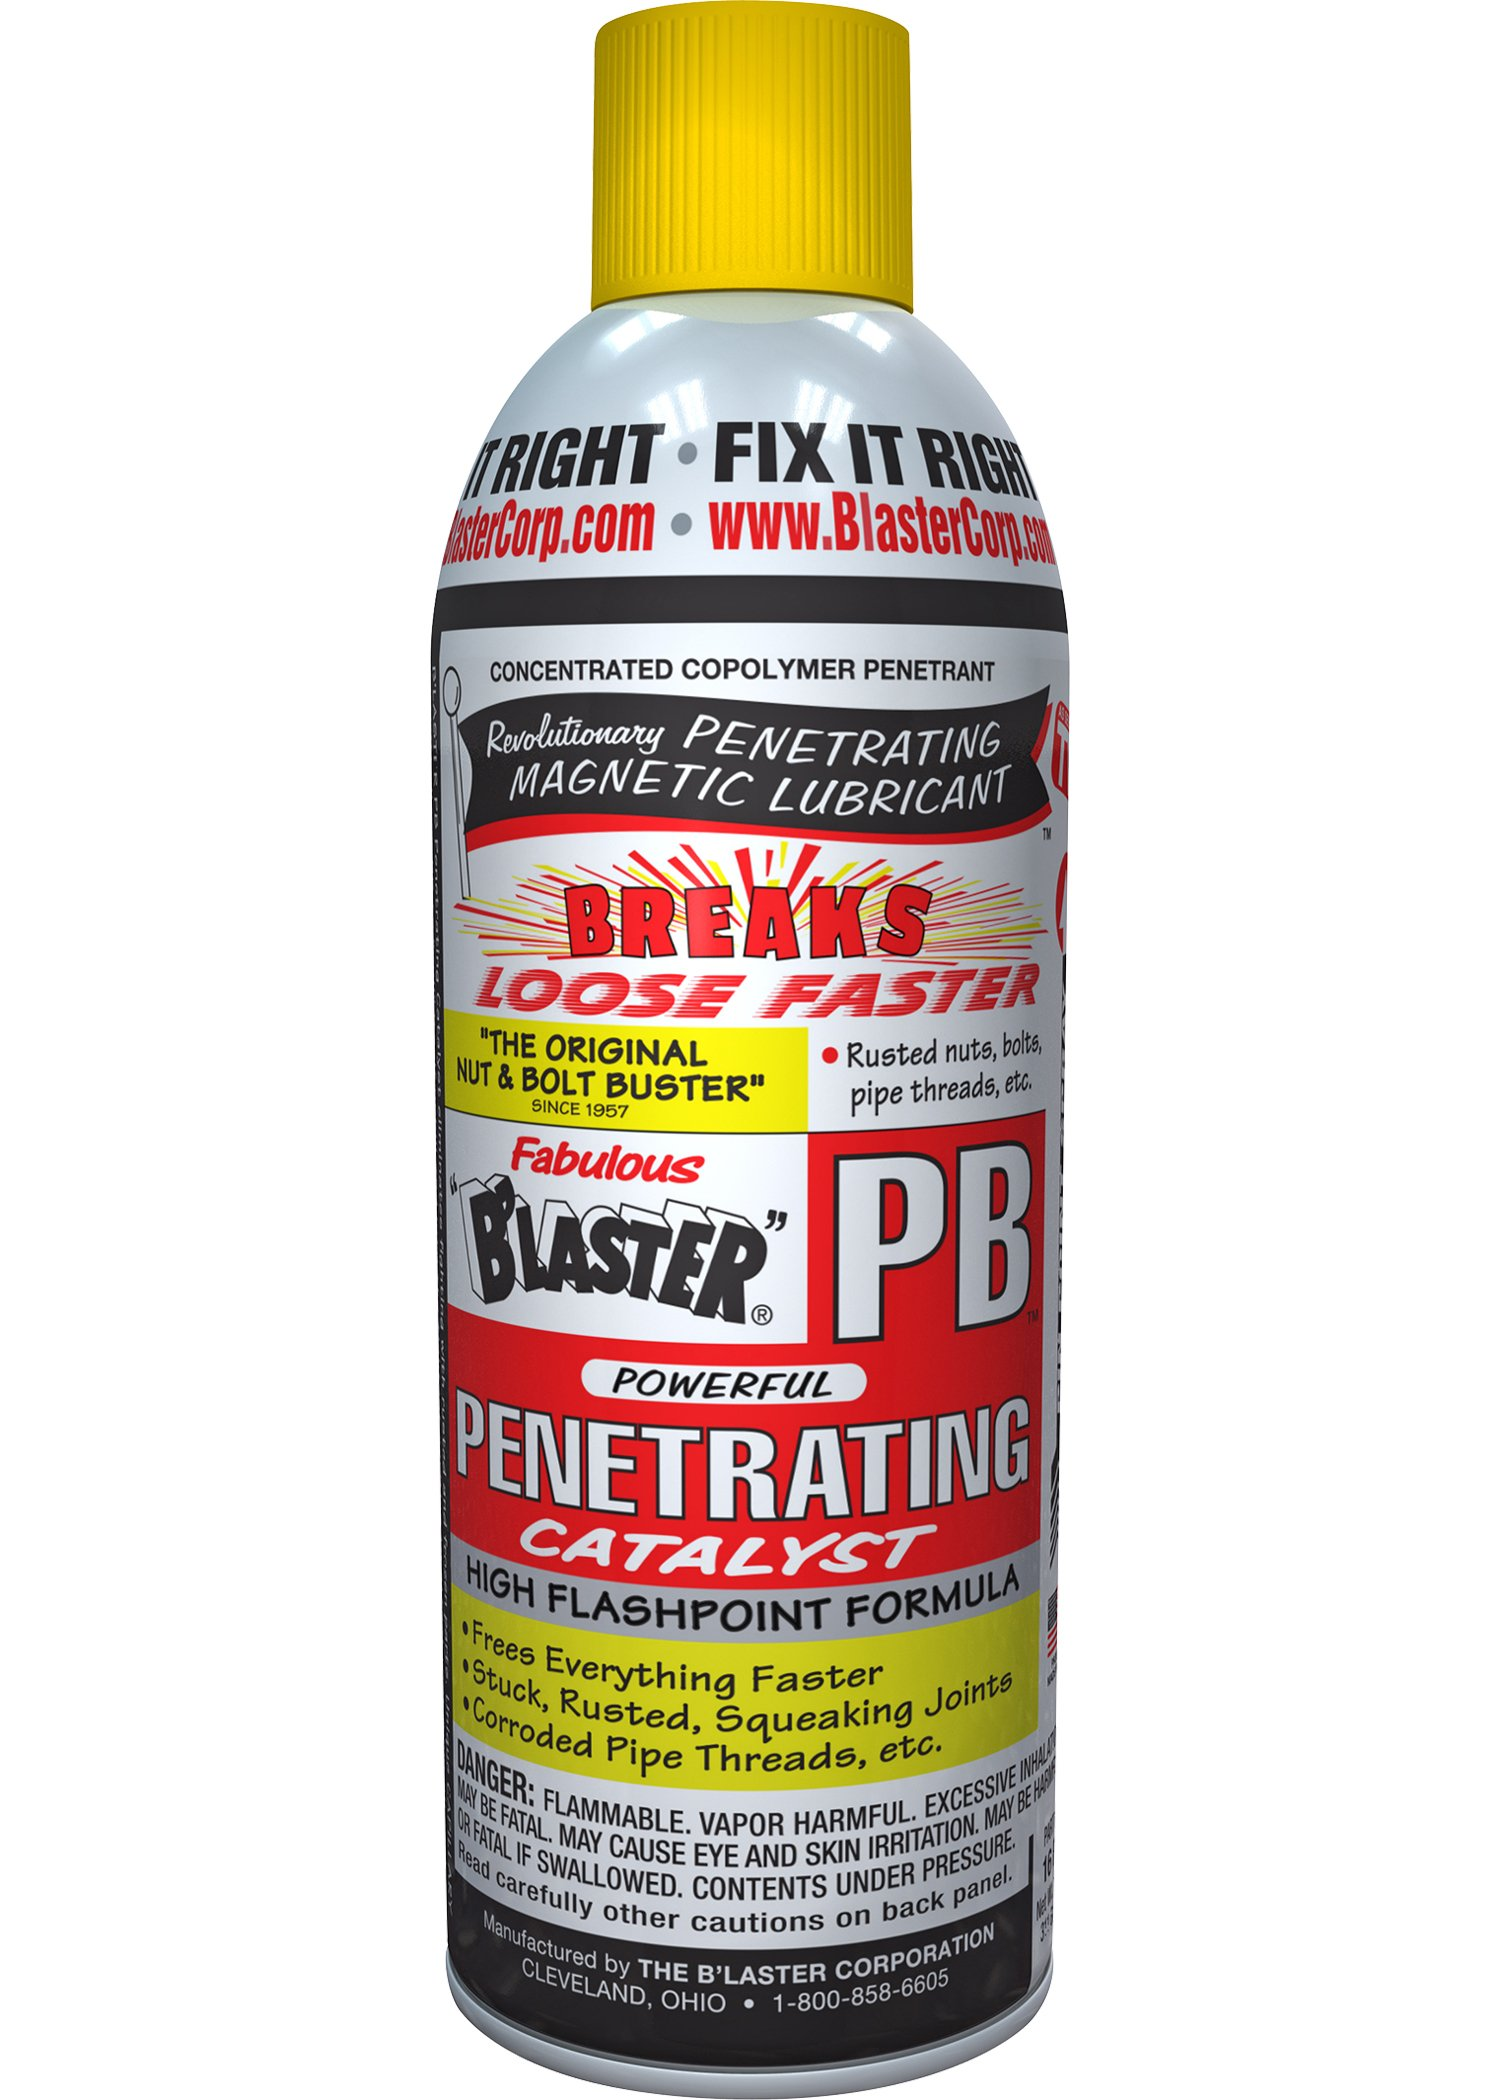 B'laster 16-PB-12PK Penetrating Catalyst - 11-Ounces - Case of 12 by B'laster